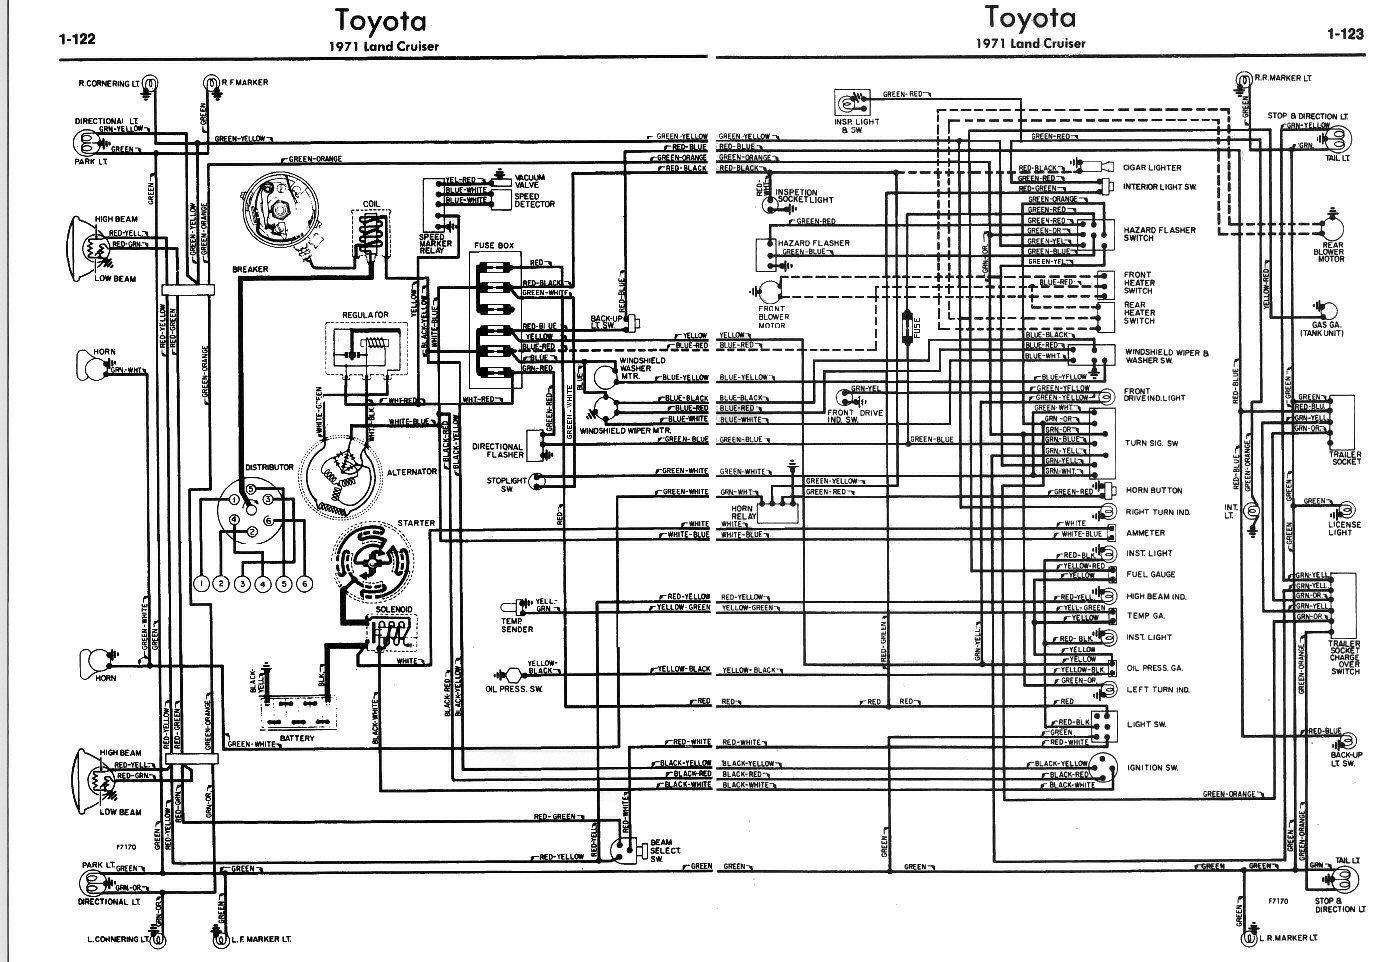 1971 1969 fj40 wiring diagram 1978 international scout wiring diagram toyota land cruiser wiring diagram at bakdesigns.co